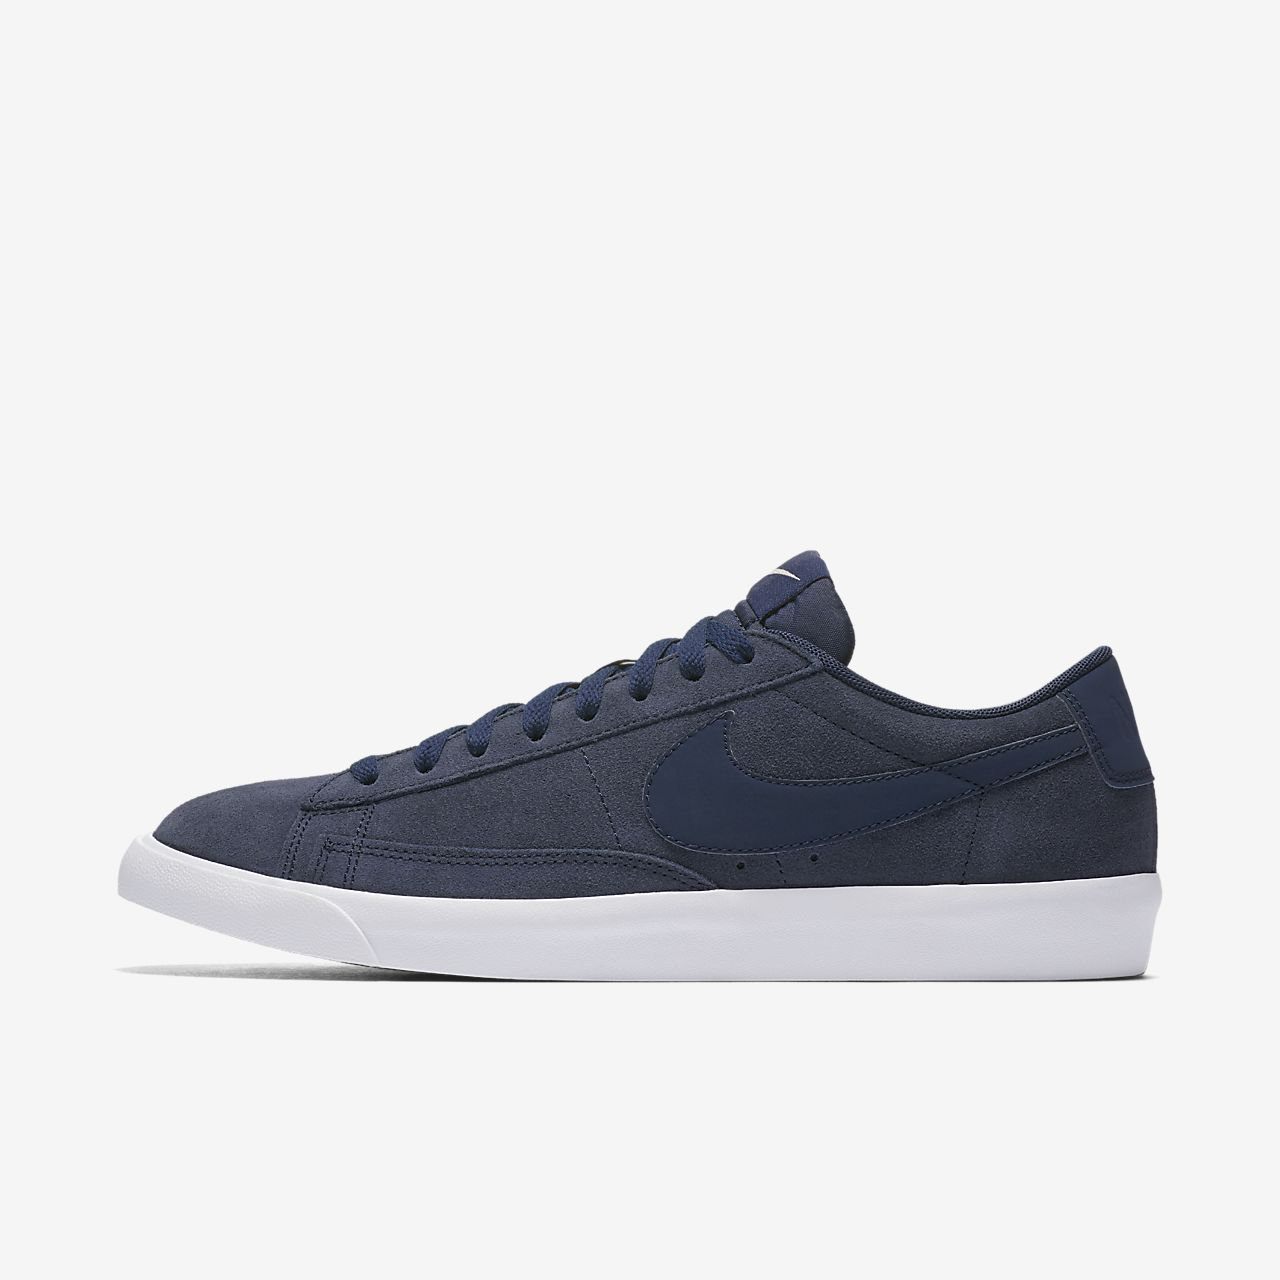 Chaussure Nike Blazer Low Pour Homme. Ca PYWDqaH9